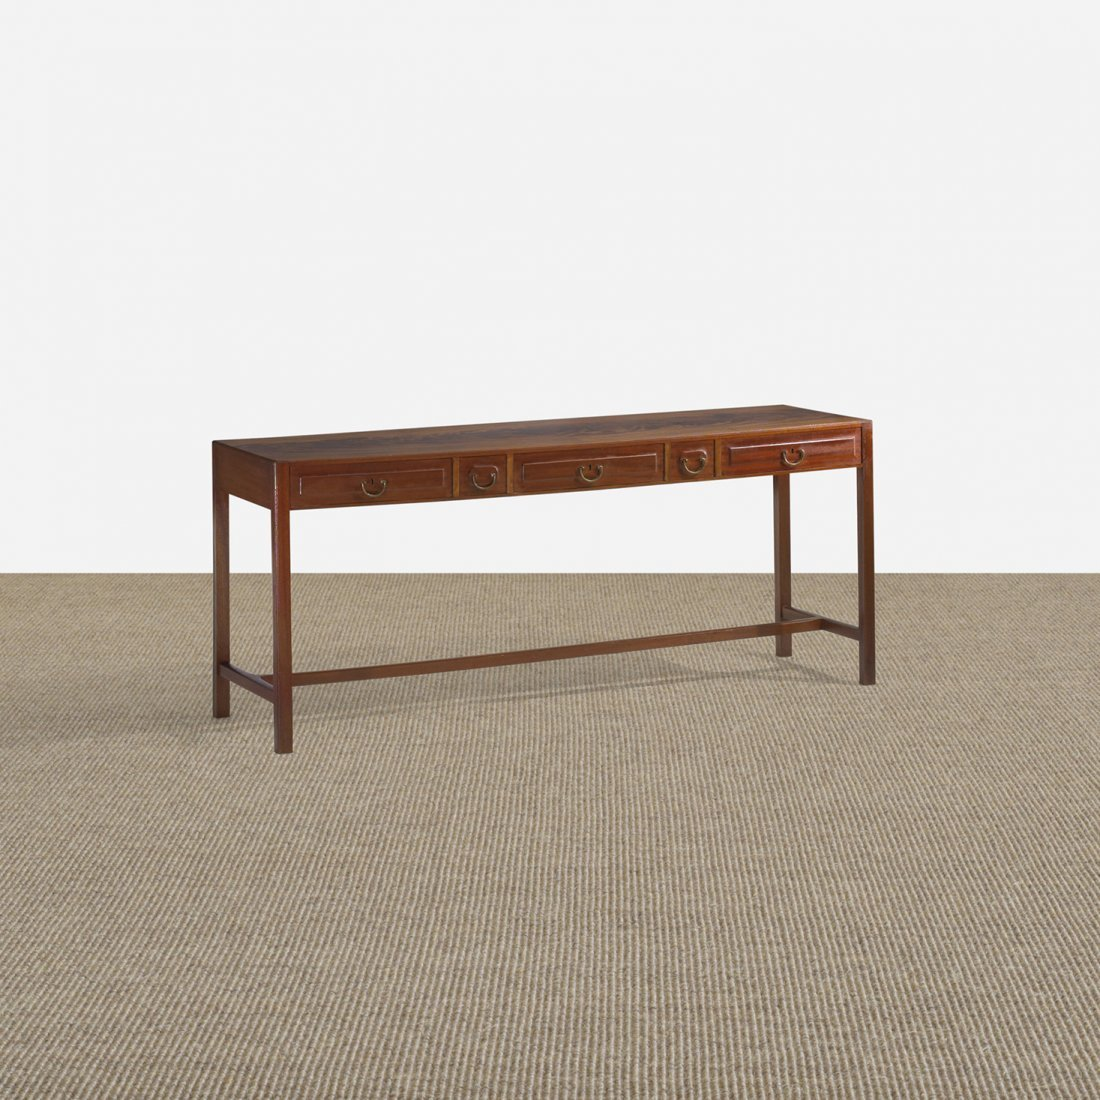 134: Josef Frank early console